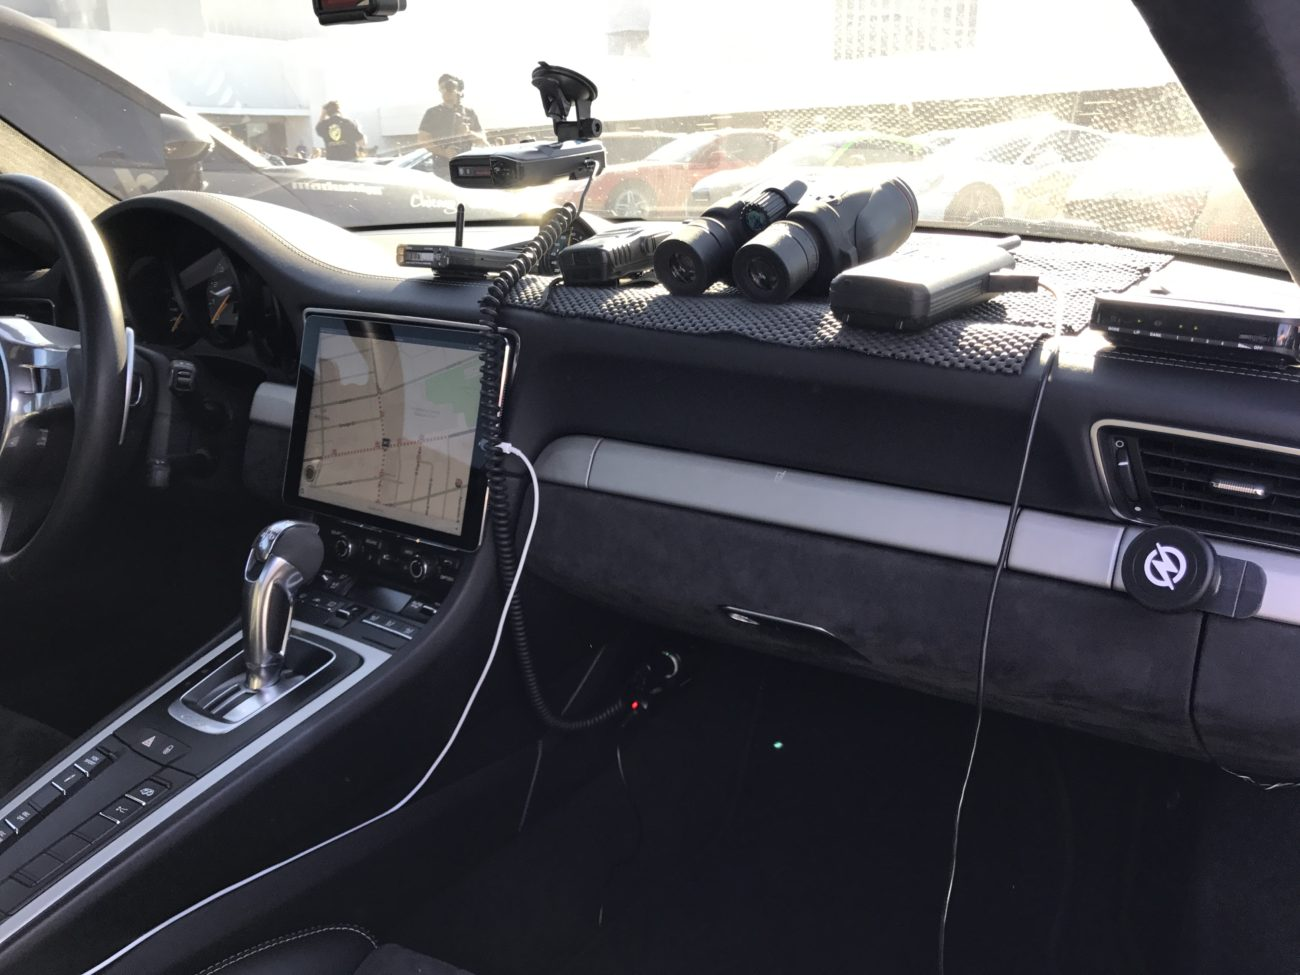 The cockpit of the Libertywalk GT3